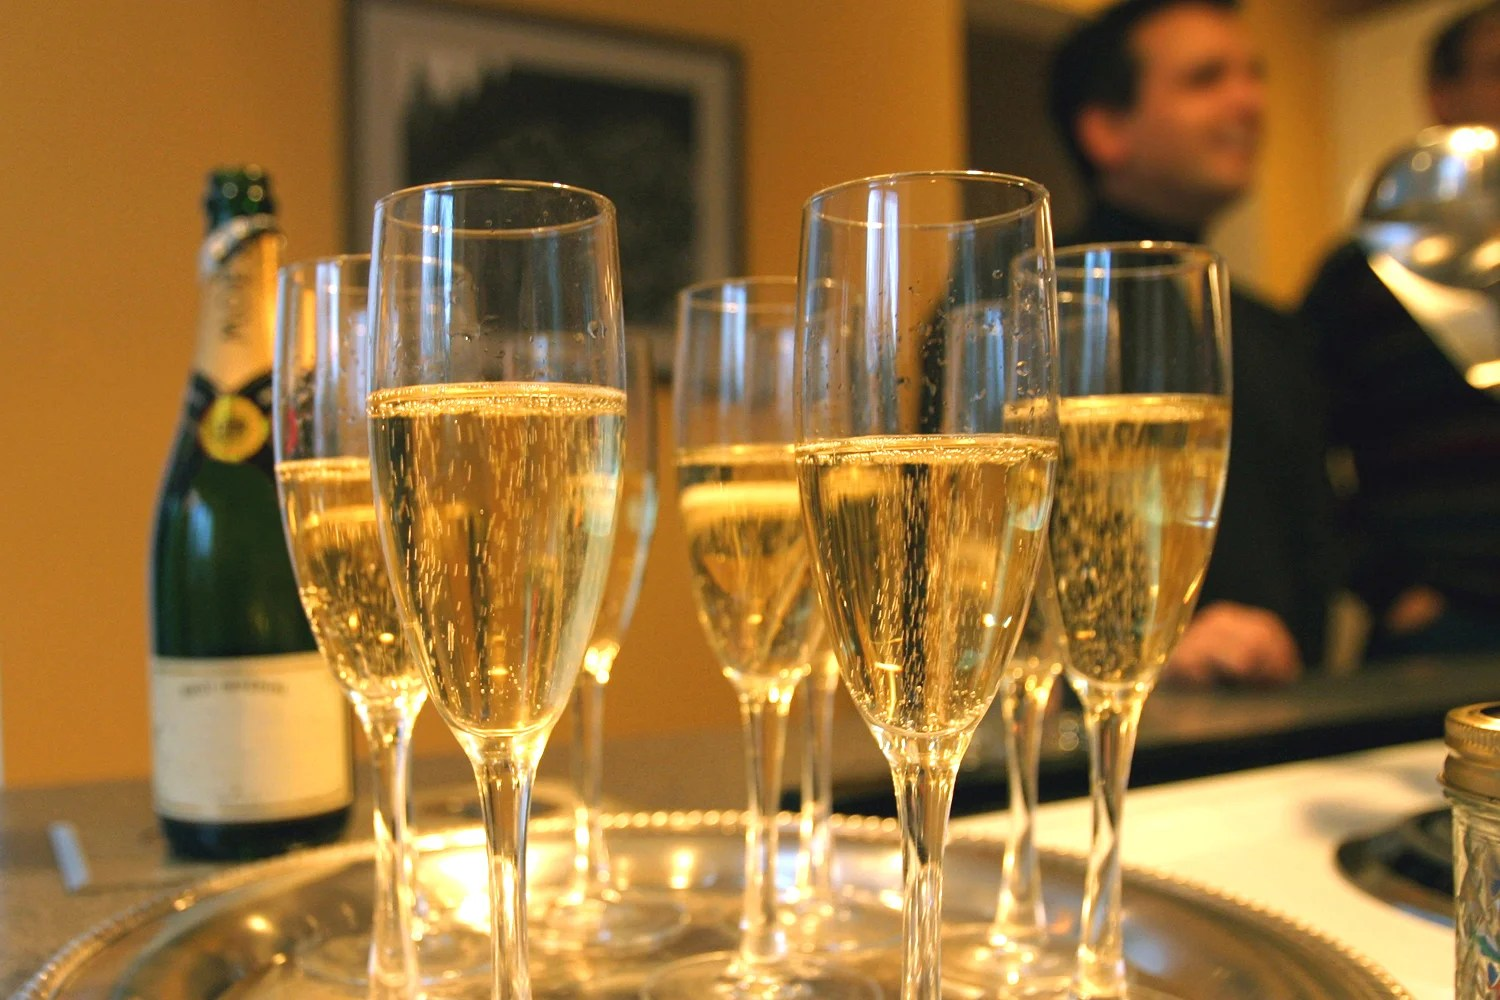 Drinking Wine In Drinking Three Glasses Of Champagne 'could Help Prevent